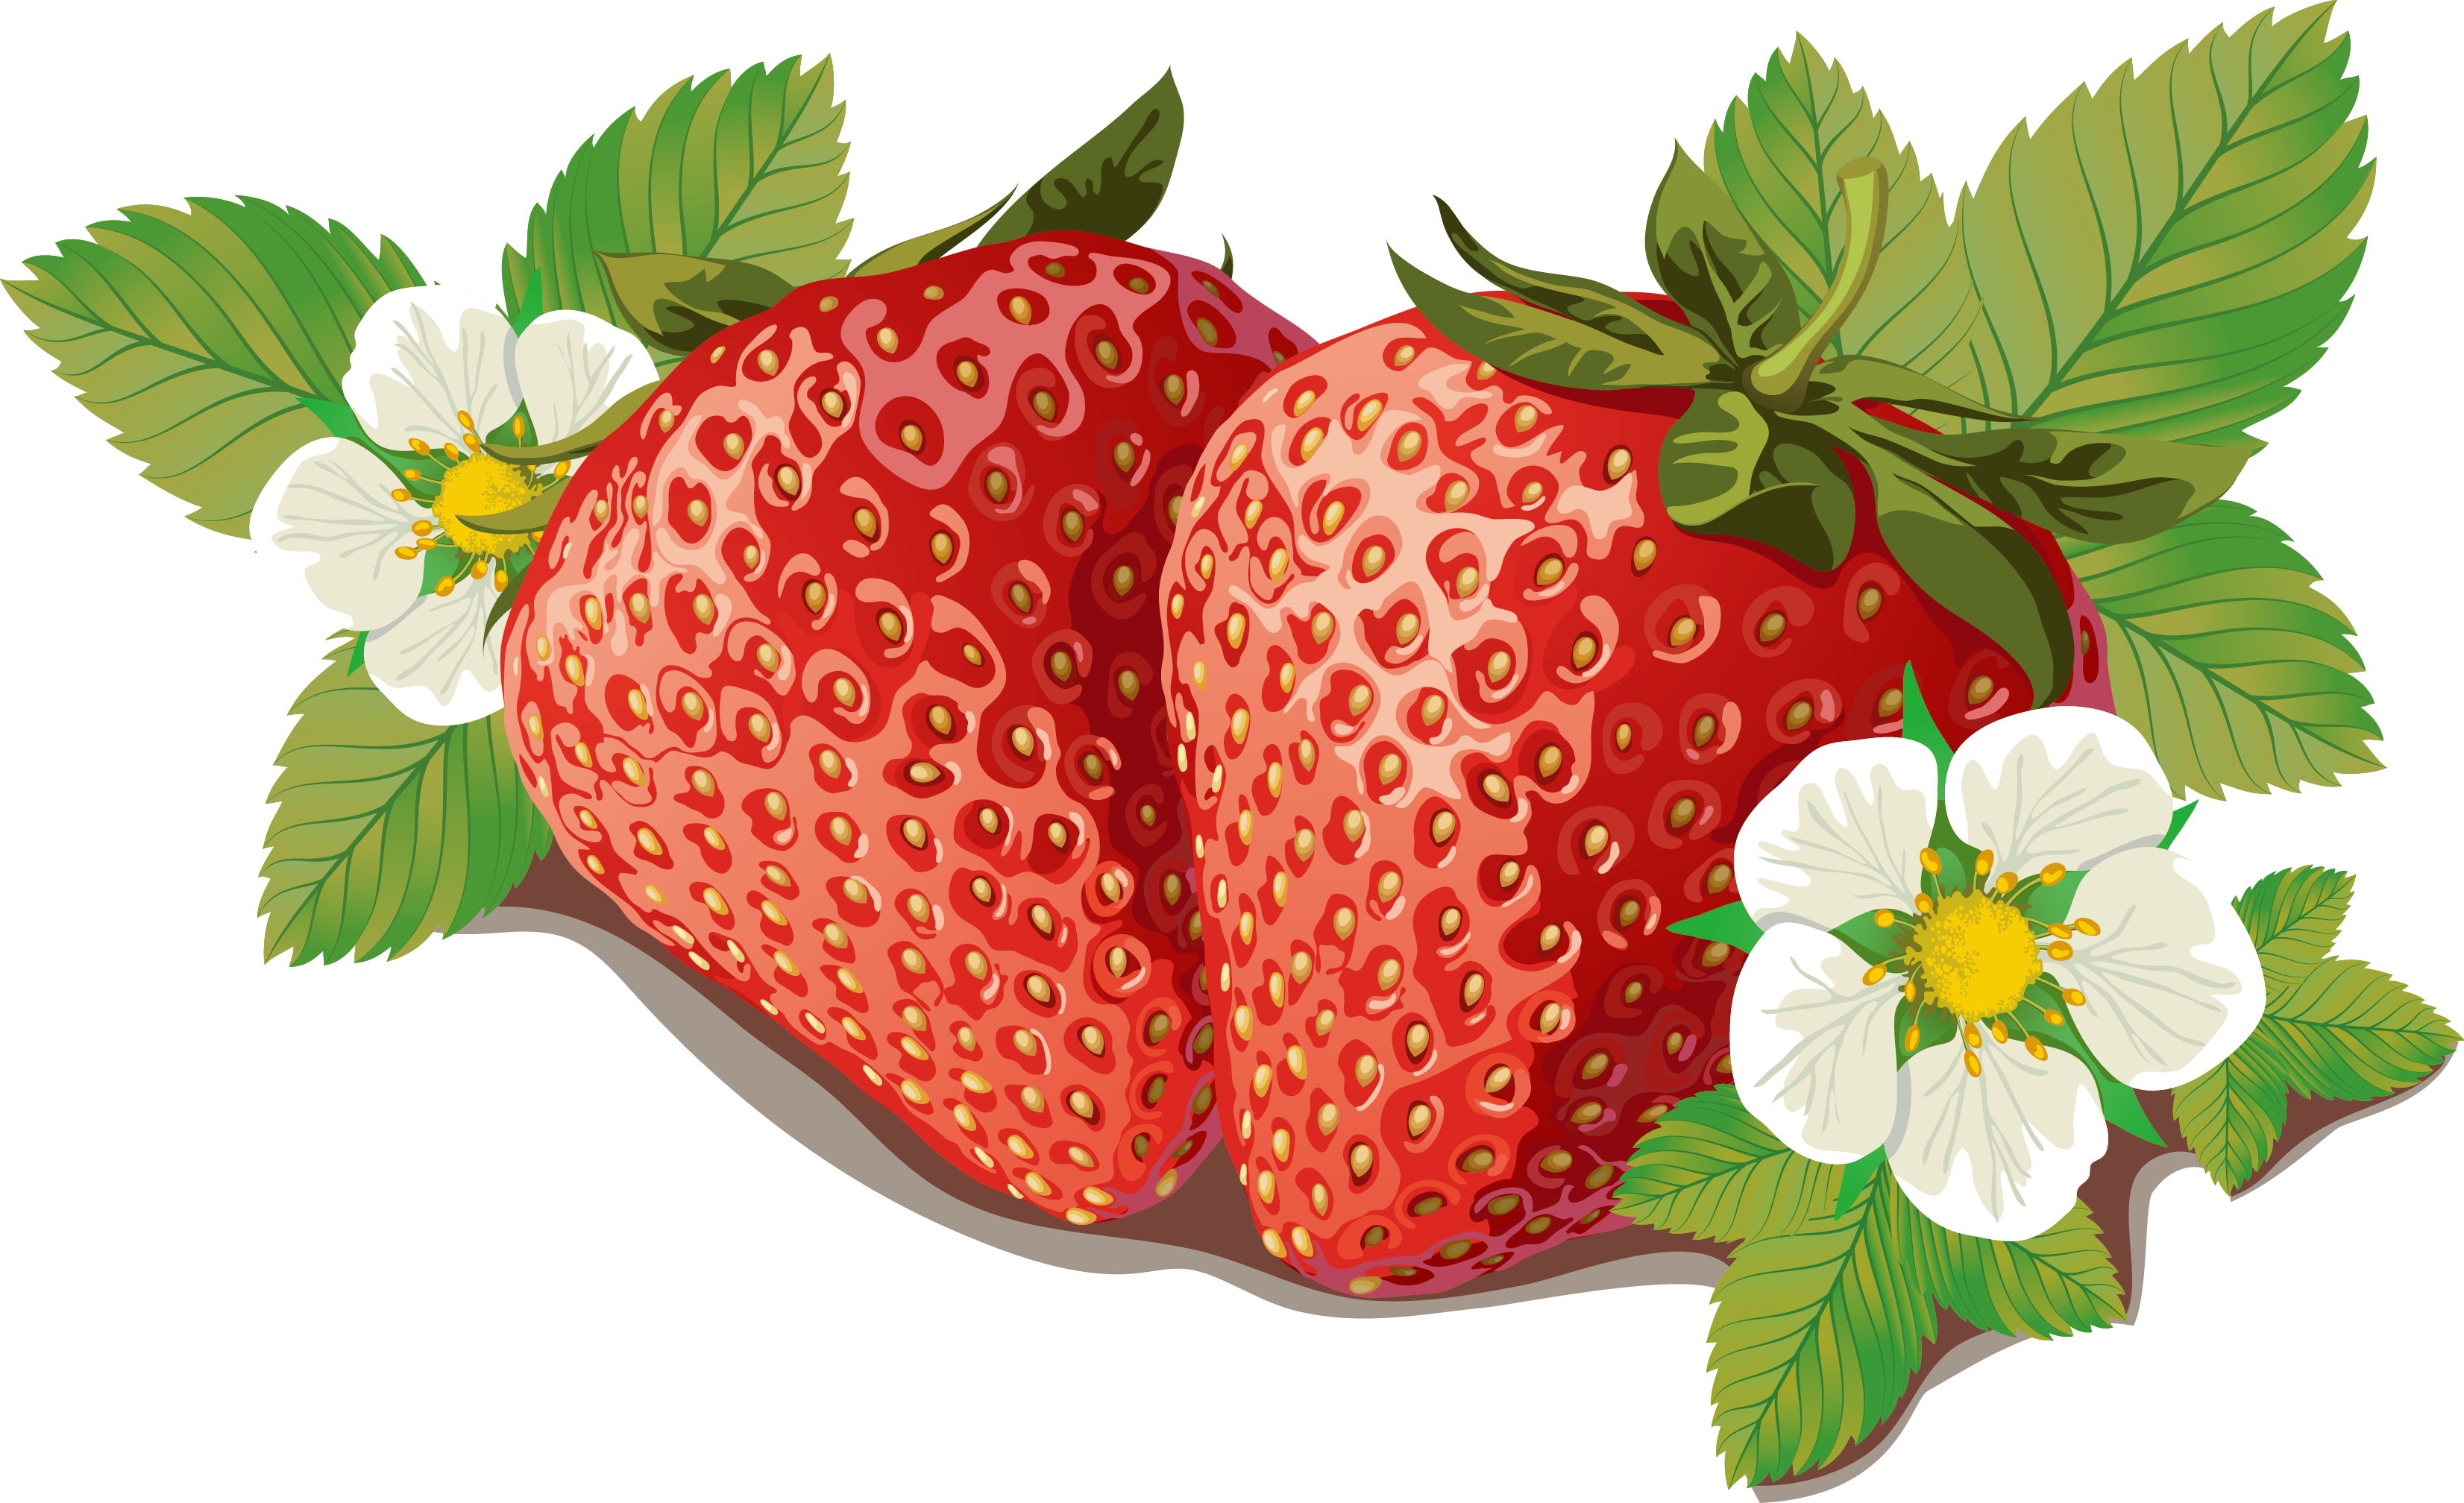 Strawberry marmalade label template. Strawberries clipart orange